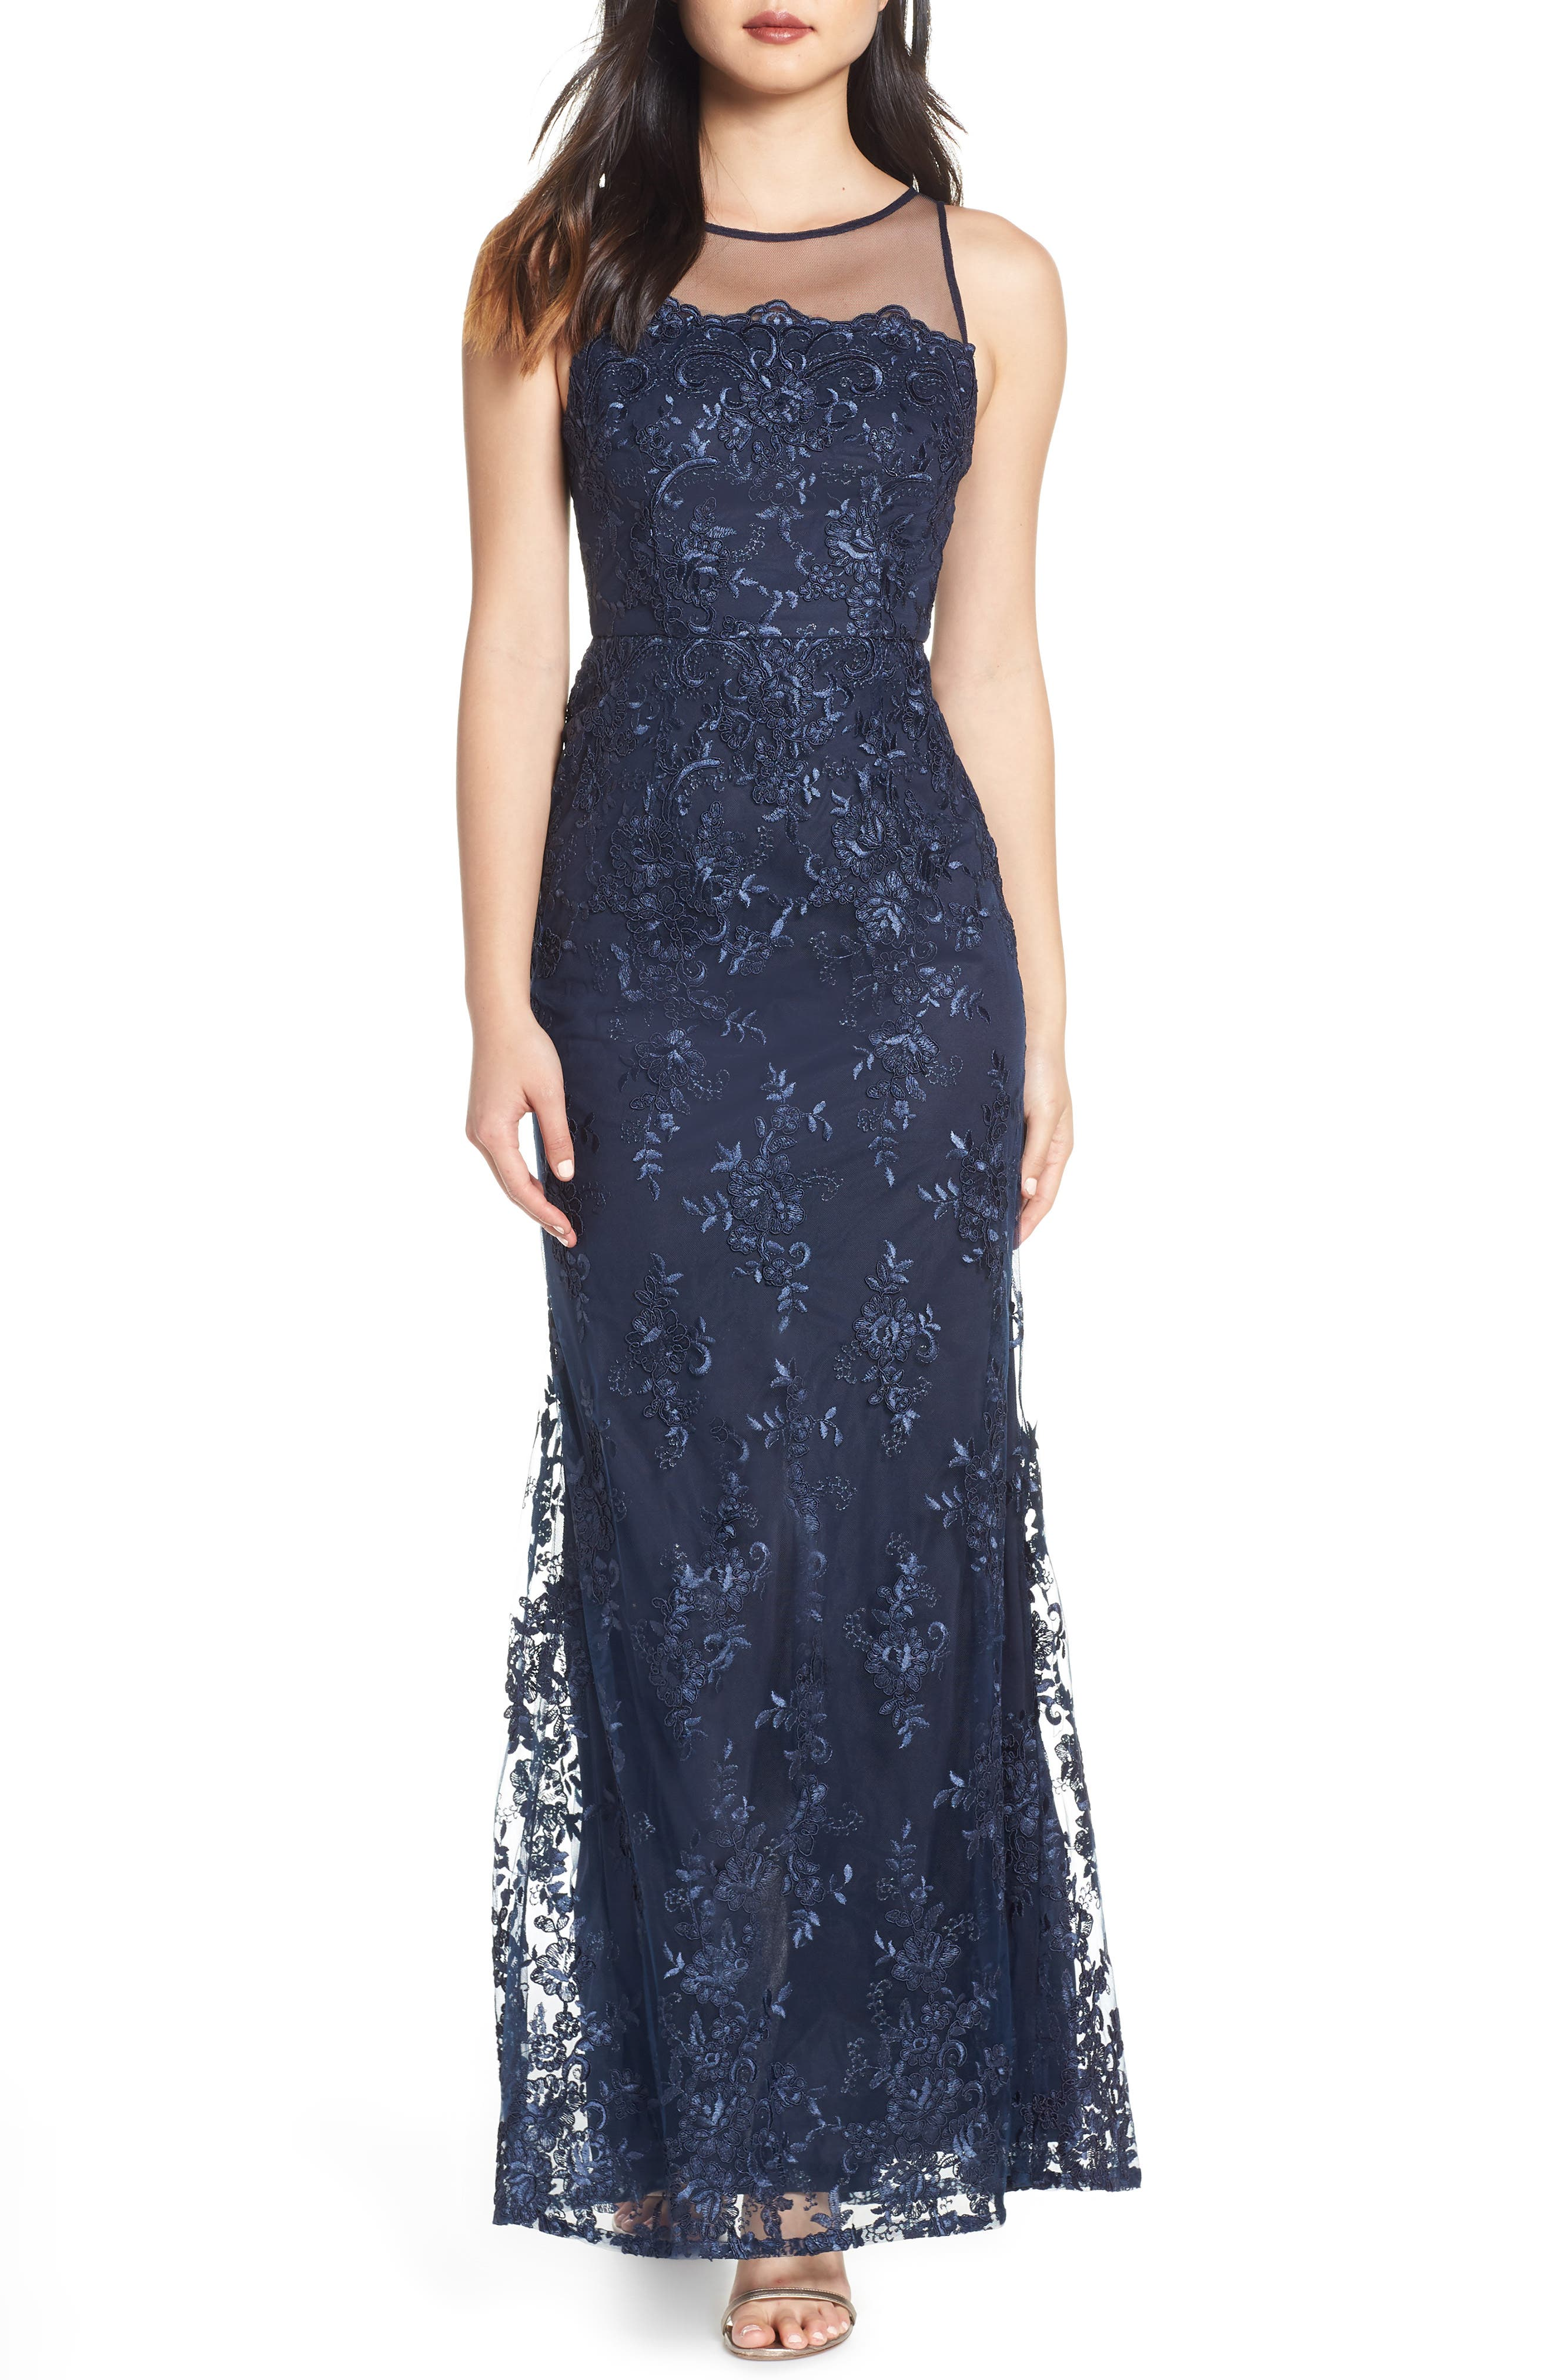 ADRIANNA PAPELL Corded Lace Evening Dress, Main, color, MIDNIGHT